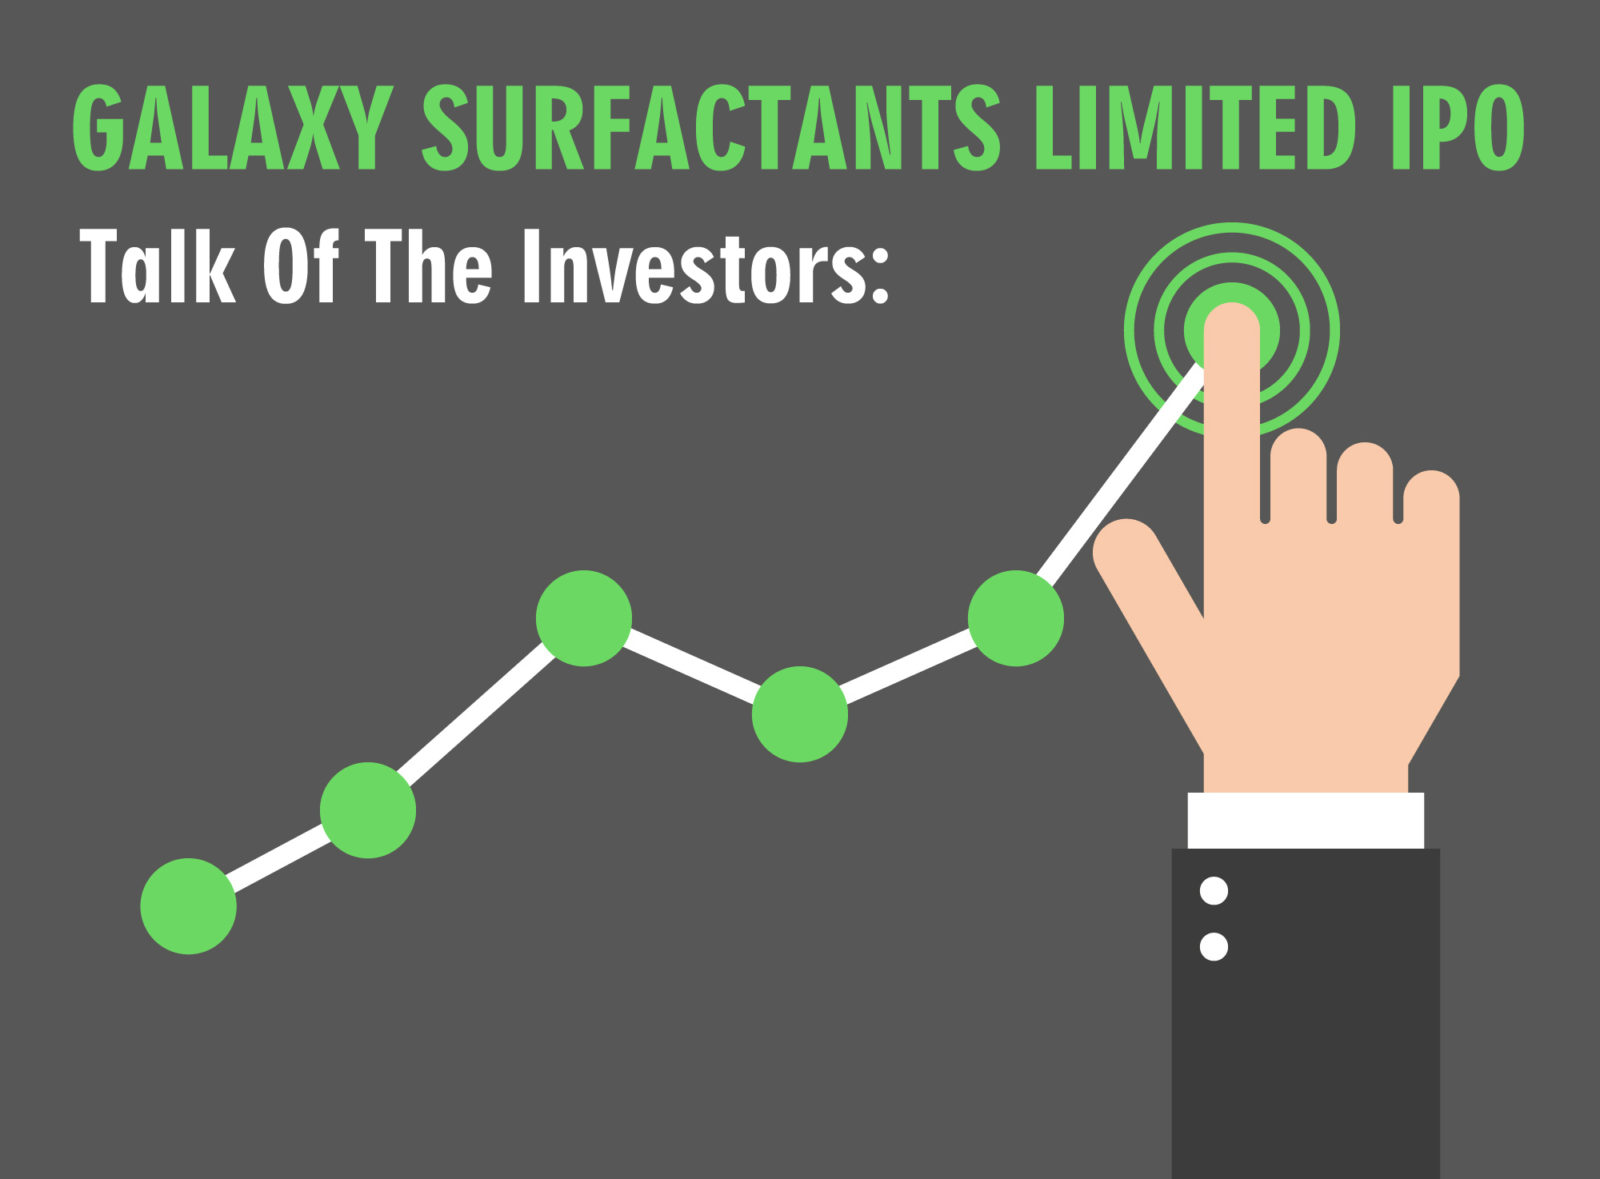 GALAXY SURFACTANTS LIMITED IPO